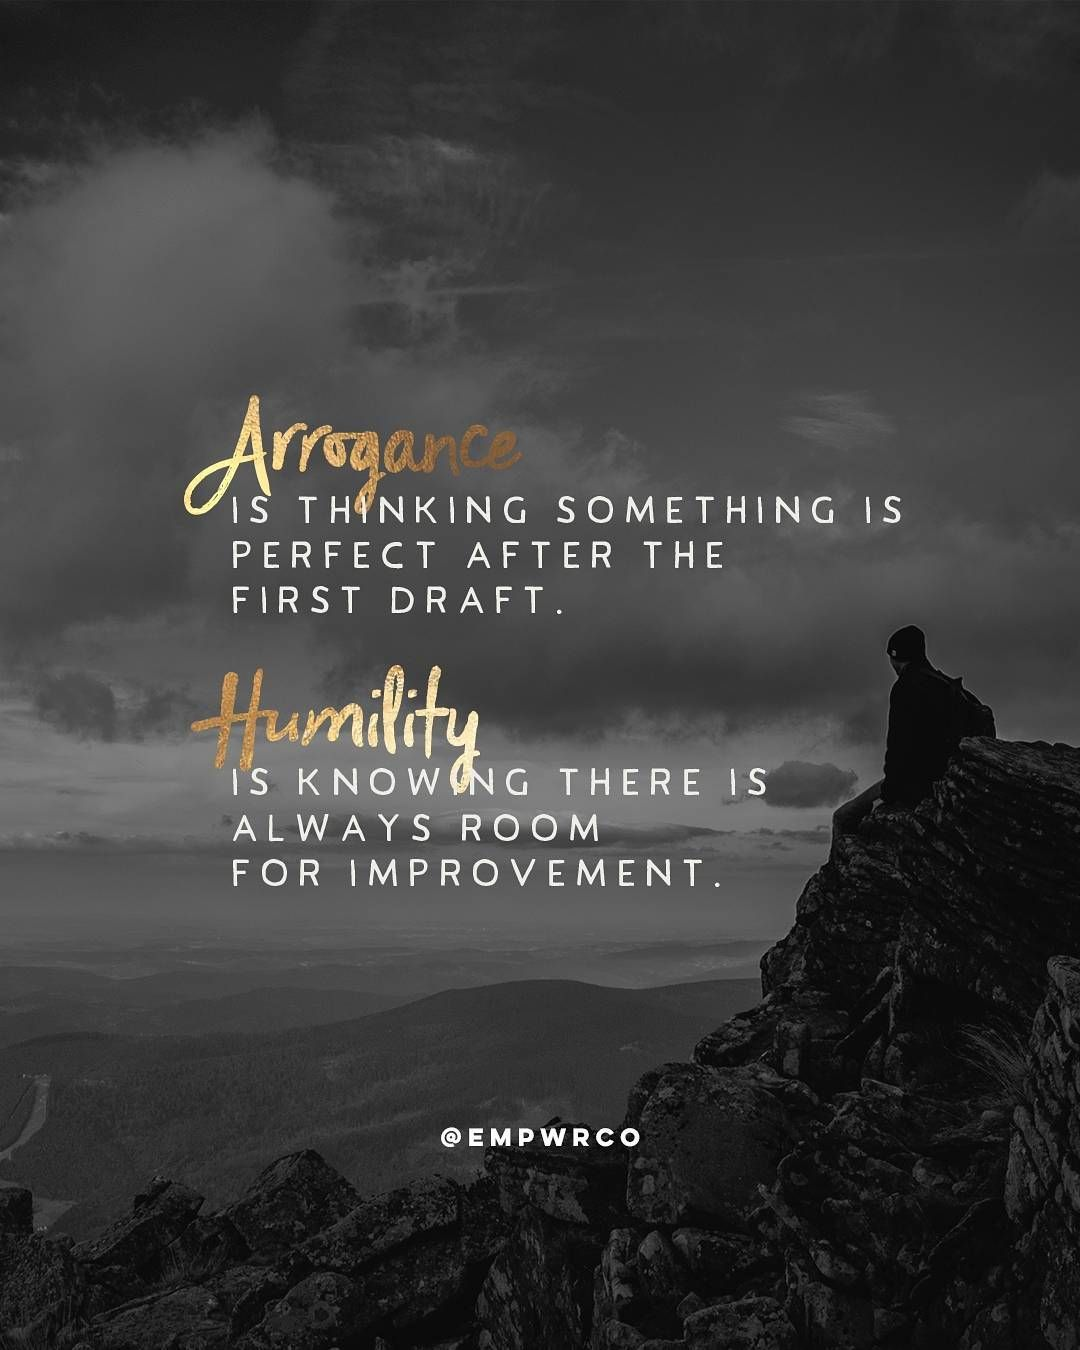 Arrogance Is Thinking Something Is Perfect After The First Draft Humility Is Knowing There Is Always Arrogant People Quotes Humility Quotes Arrogance Quotes